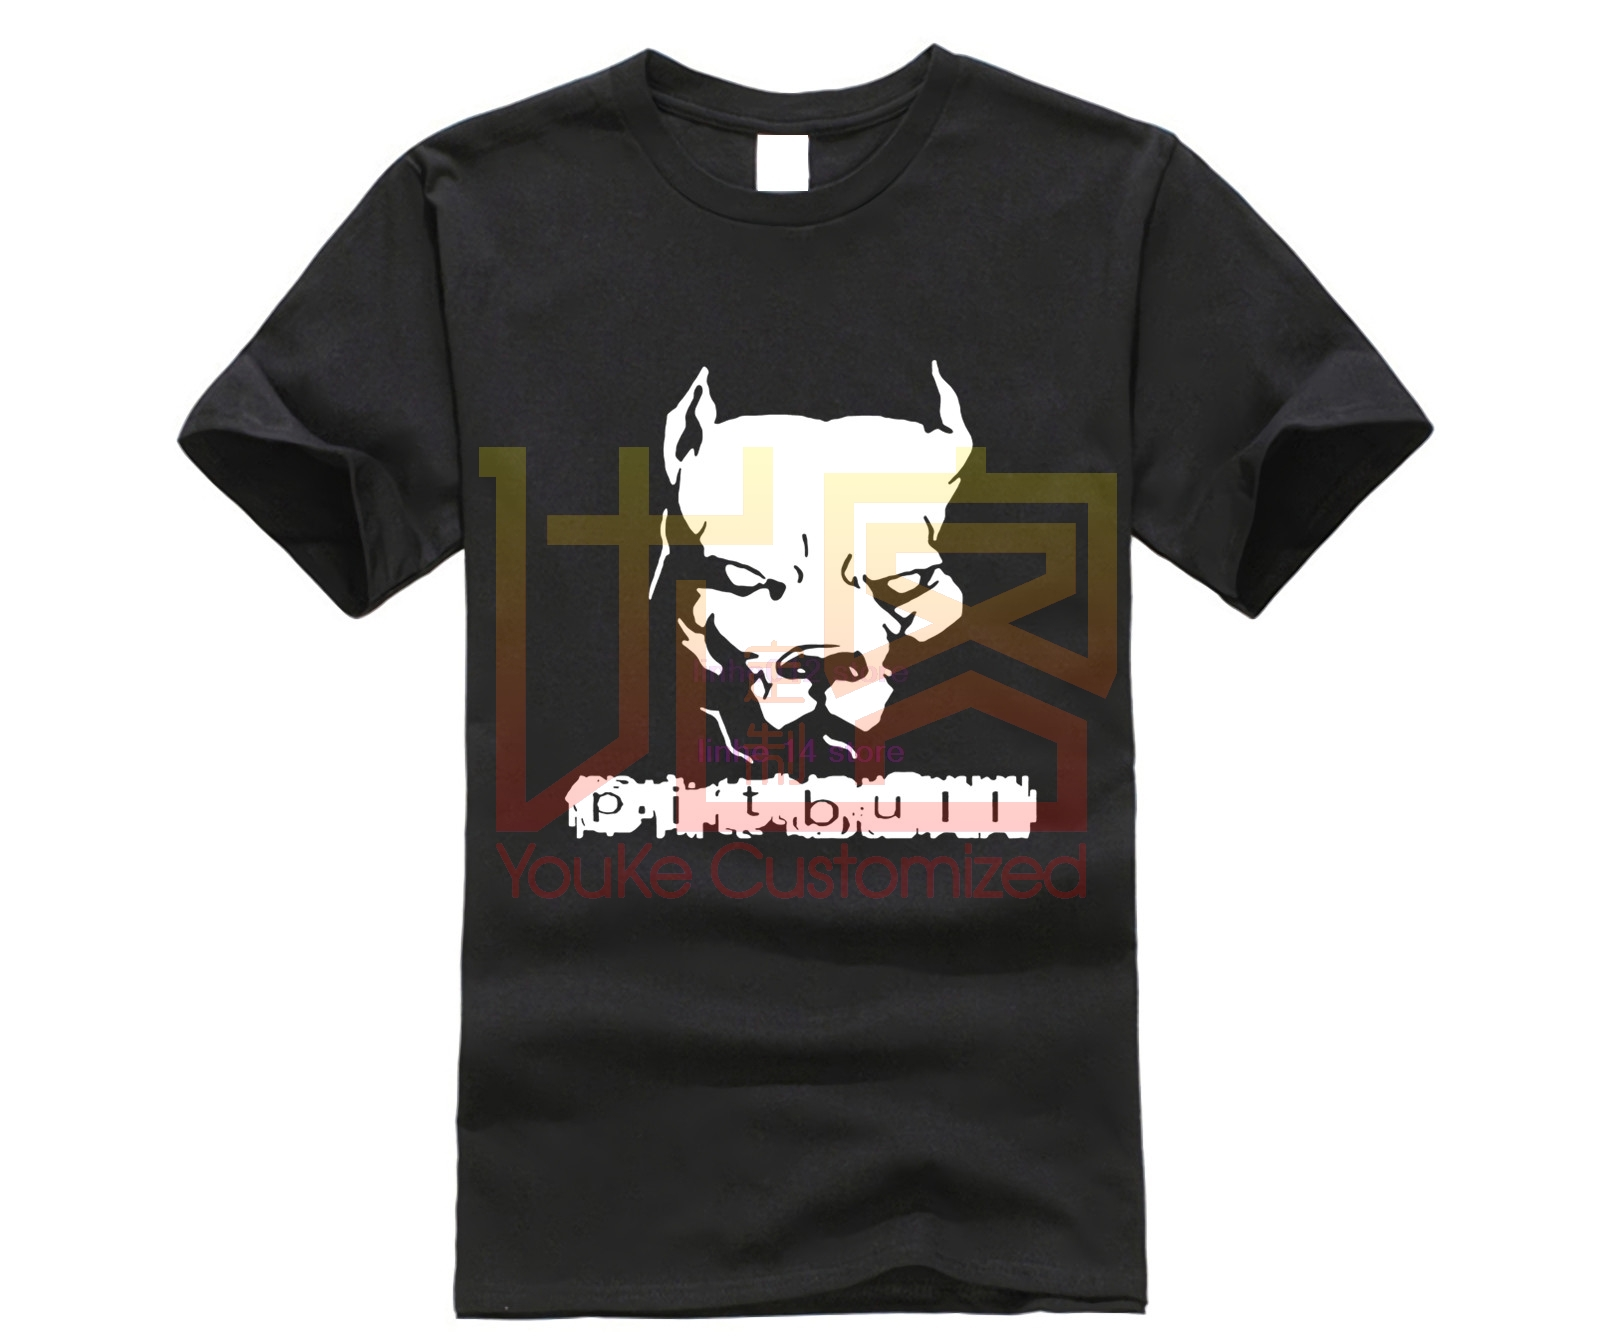 Fashion Summer t-<font><b>shirt</b></font> Men Tops Pitbull American <font><b>Pit</b></font> <font><b>Bull</b></font> Dog Tshirt men's Comfortable Cotton T <font><b>Shirt</b></font> Tees image